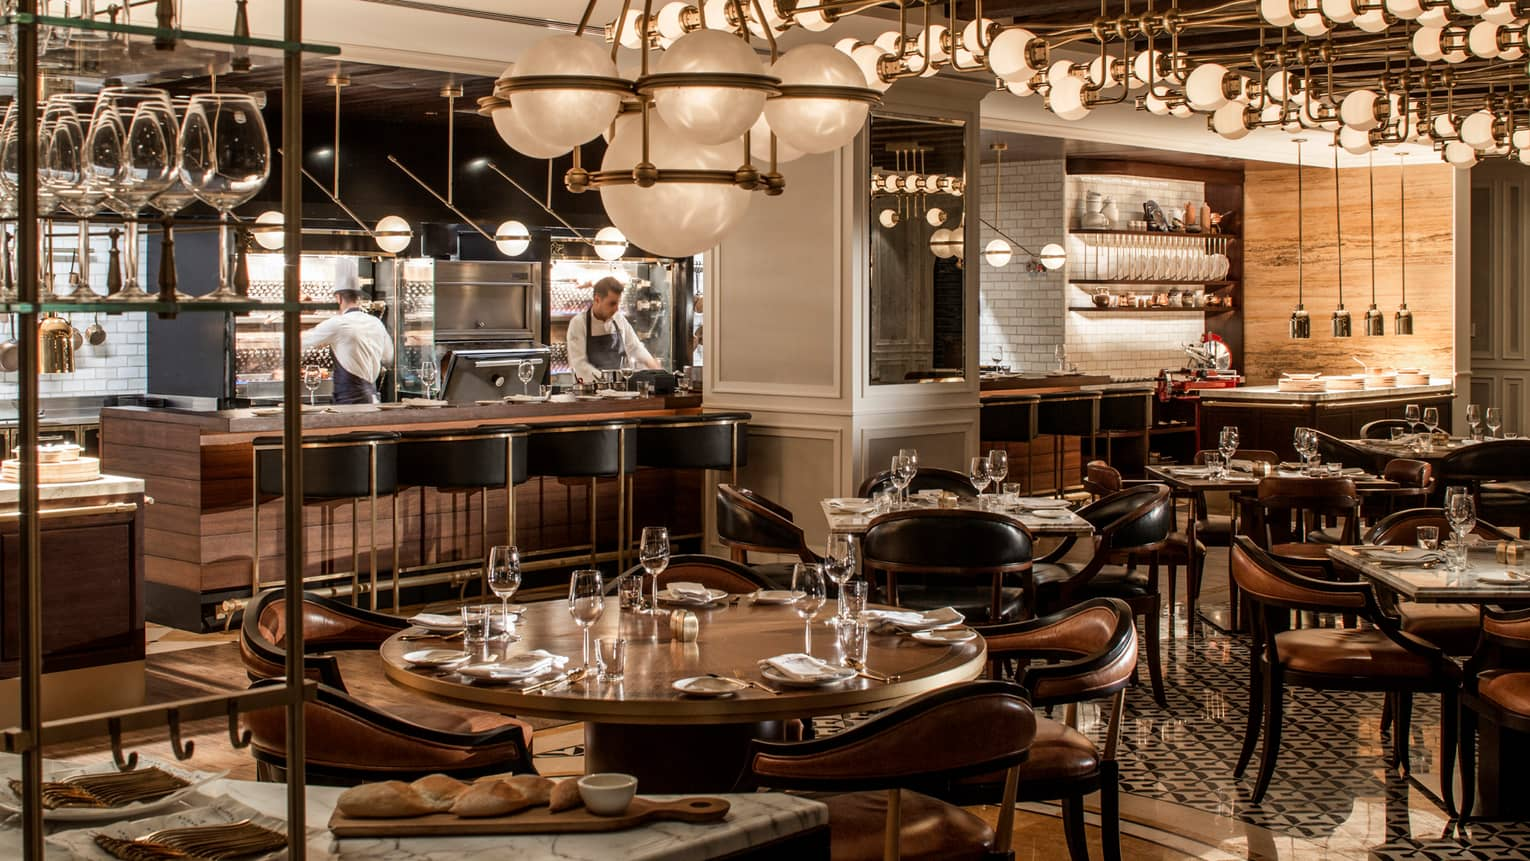 La Capitale dining room with dark, wood decor, round tables and chandeliers, globe chandeliers, chefs in open kitchen